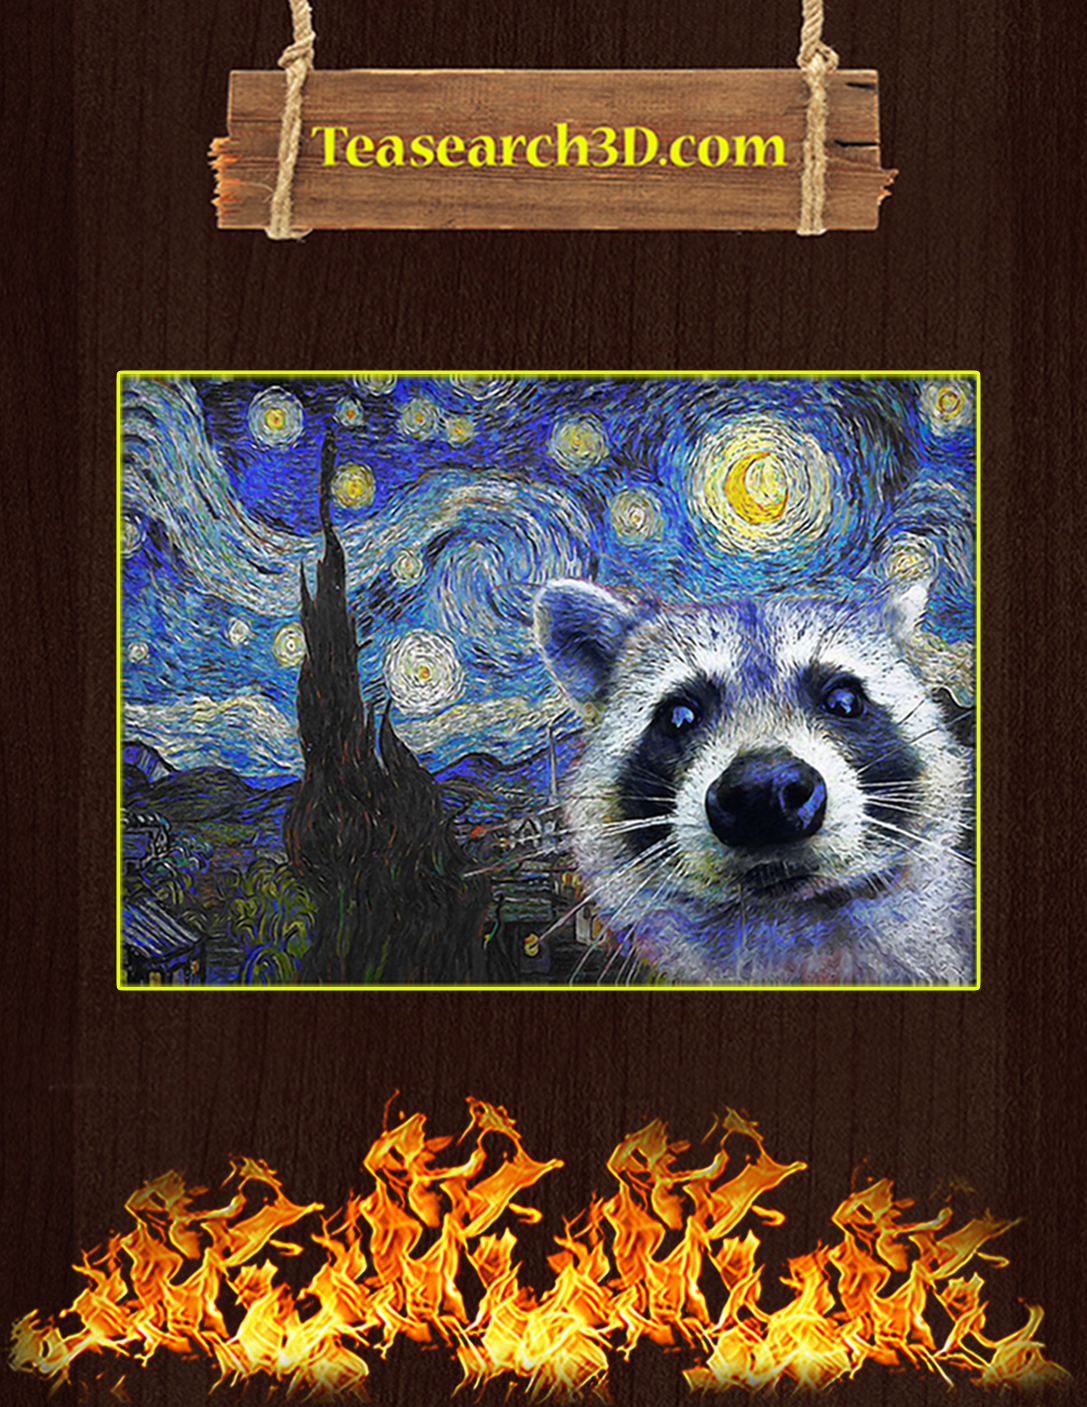 Racoon starry night van gogh poster A2